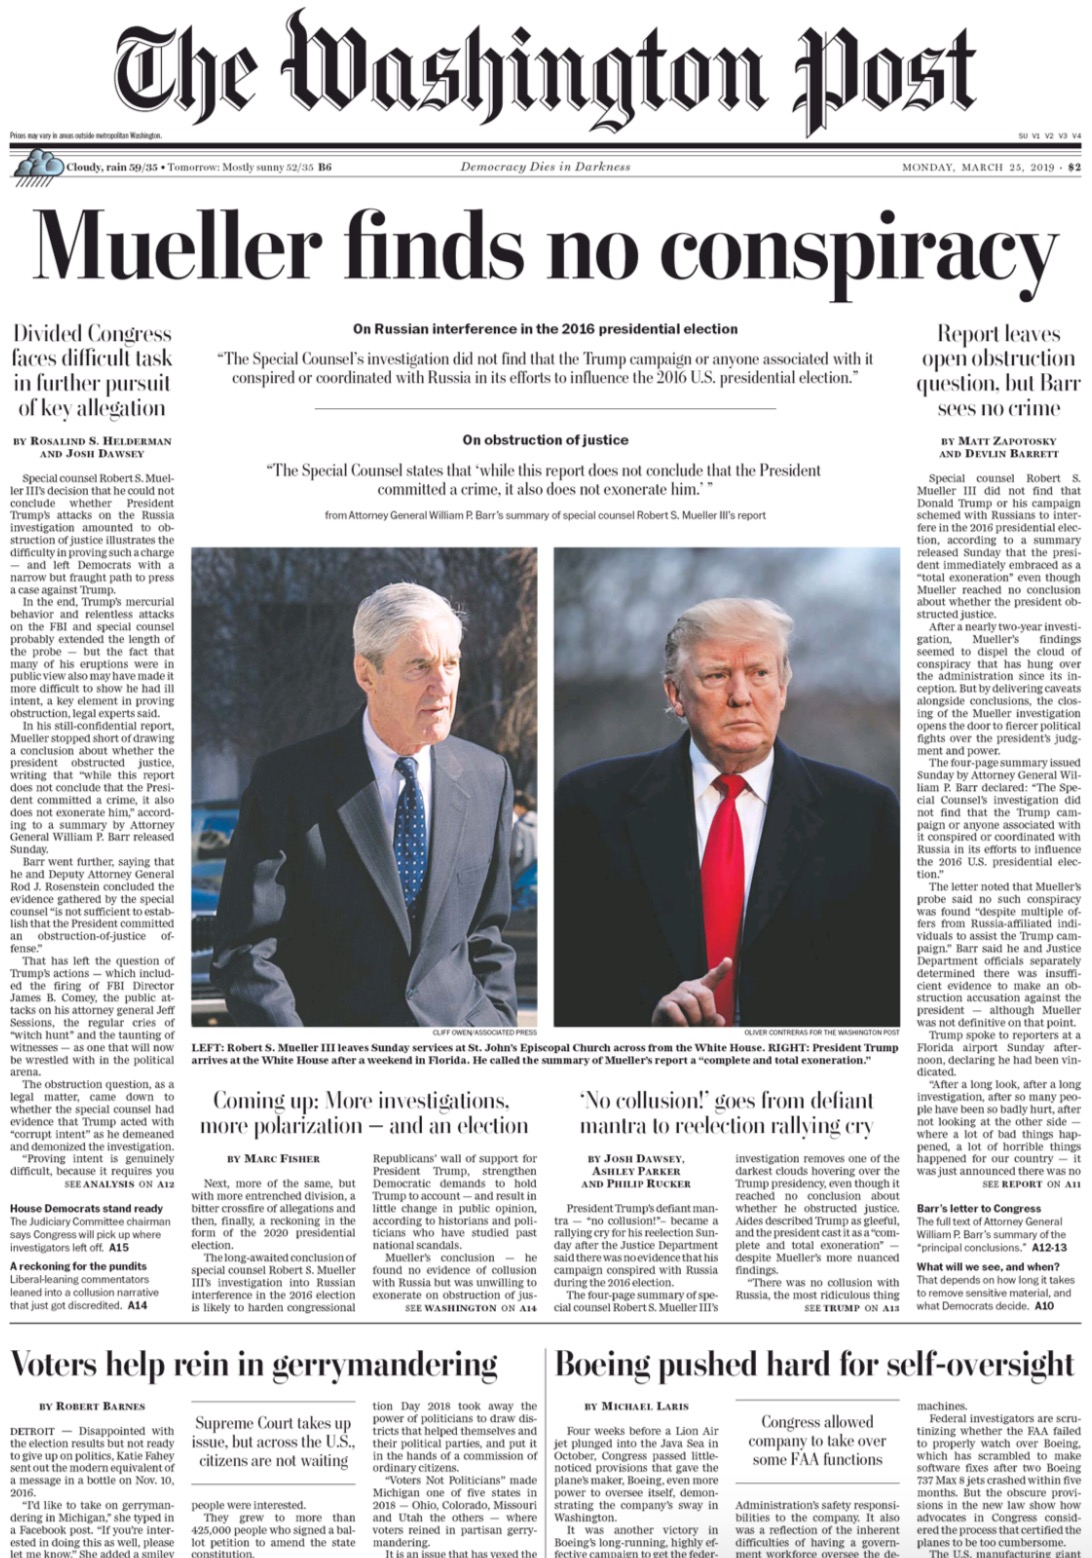 Newspaper Investigations Of Toxic >> How Major Newspapers Covered The Mueller Report News Digg